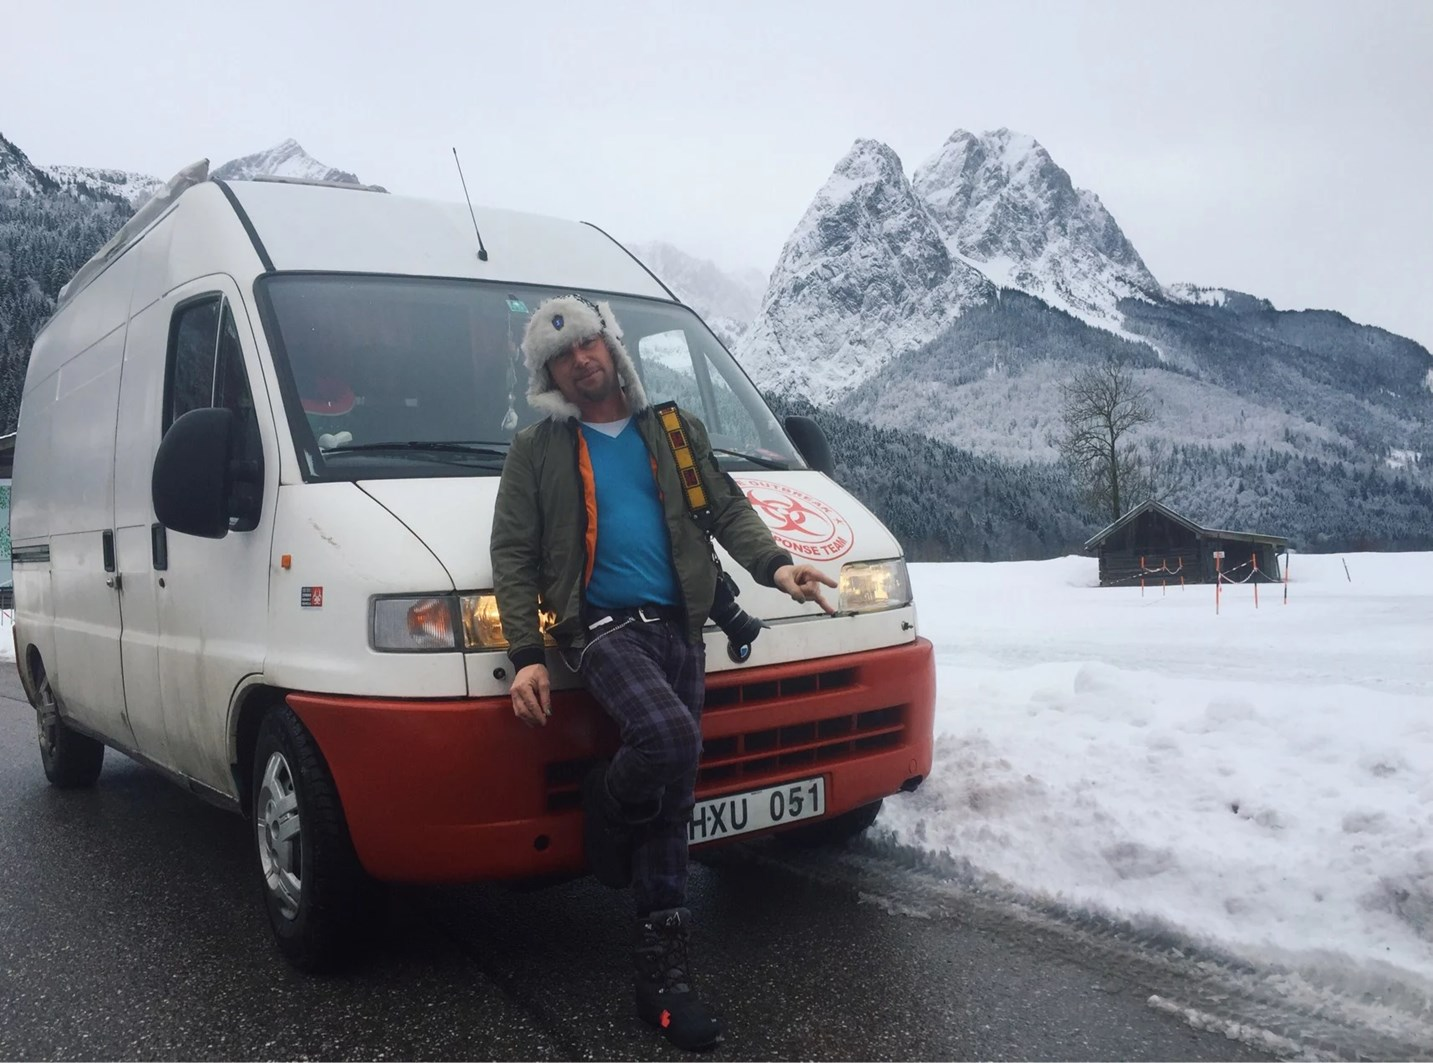 Vanlife onlylifeweknow Germany snowstorm winter mountains alps view off road landscape brennerpass Austria Italy garmish-partenkirchen